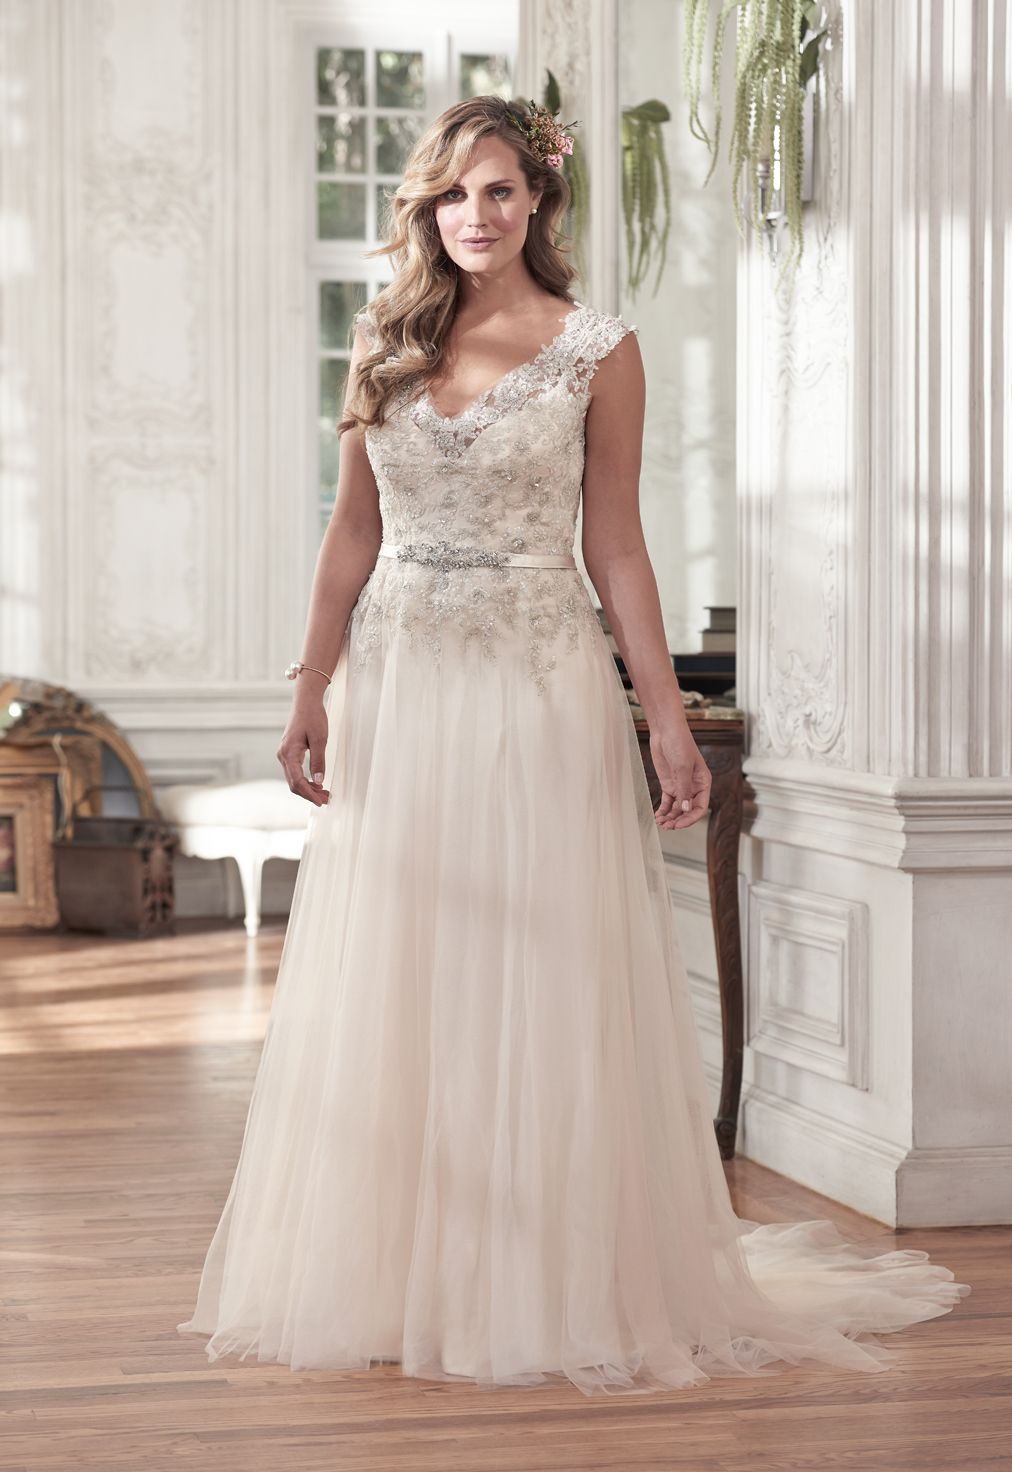 The Lisette Collection, enchanting the classic bride